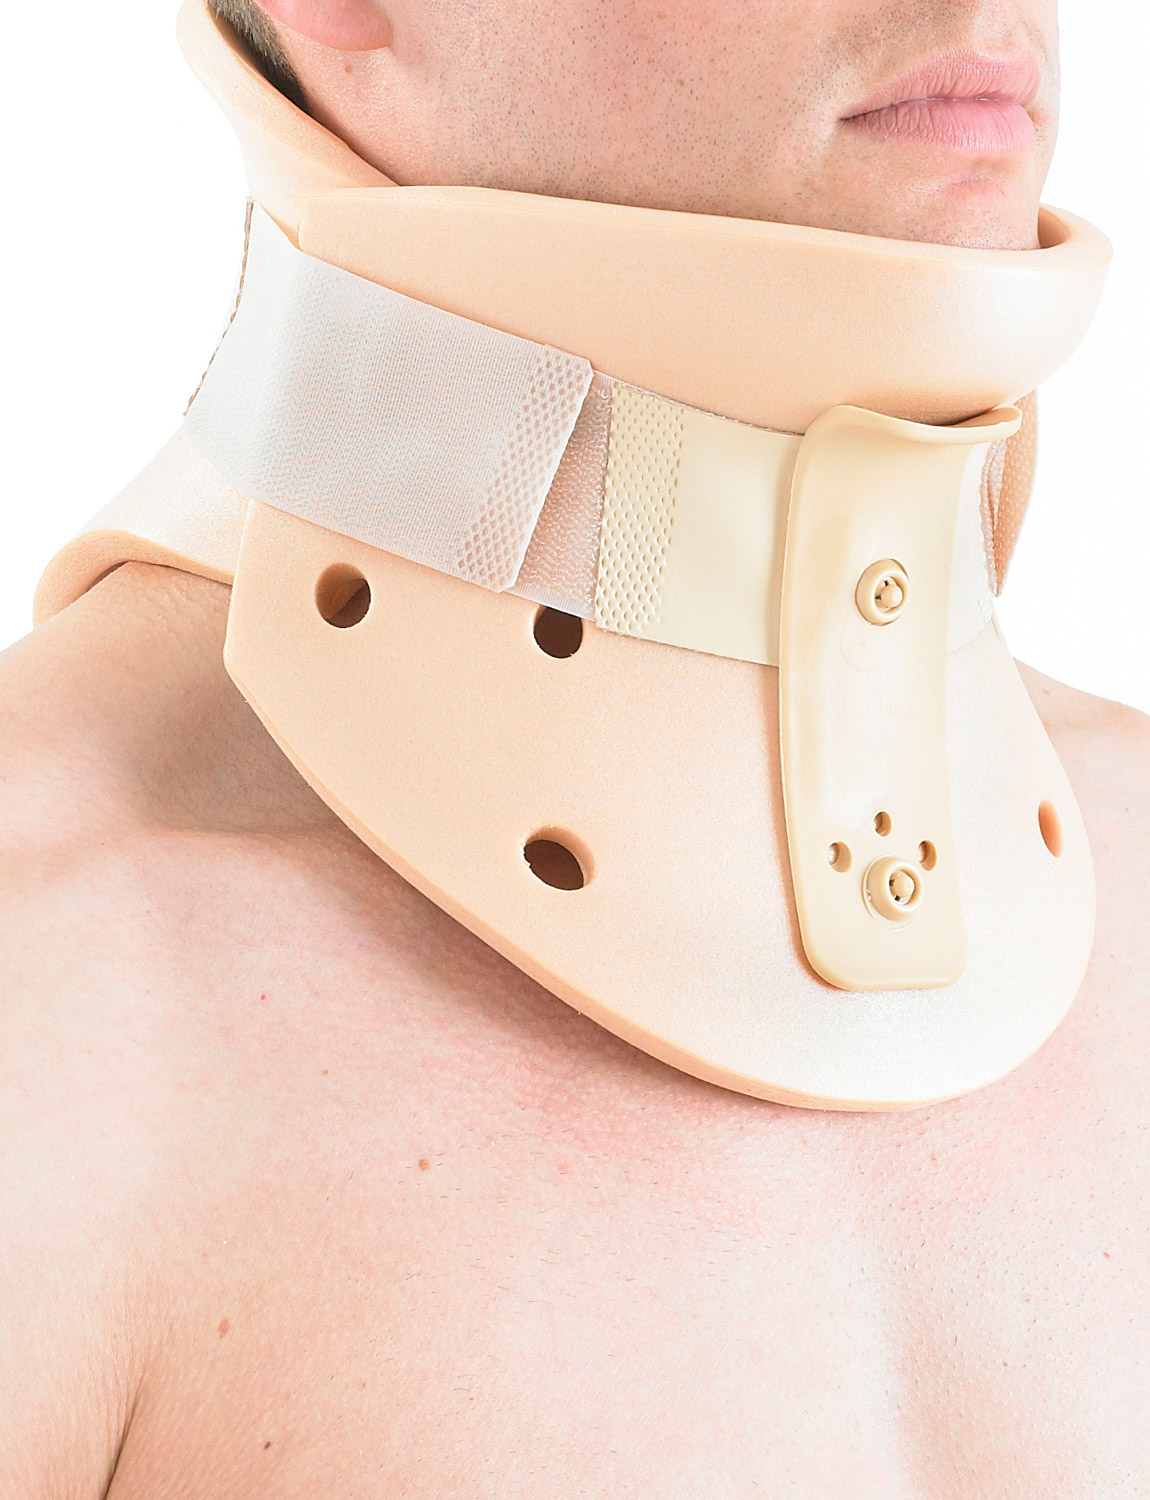 205 - PHILADELPHIA COLLAR  Especially useful following surgery and in rehabilitation, the collar also has an opening to allow tracheal access. The moulded structure helps place the cervical spine in sight protraction, helping with relief for flexion injuries, promoting correct cervical posture and alignment.